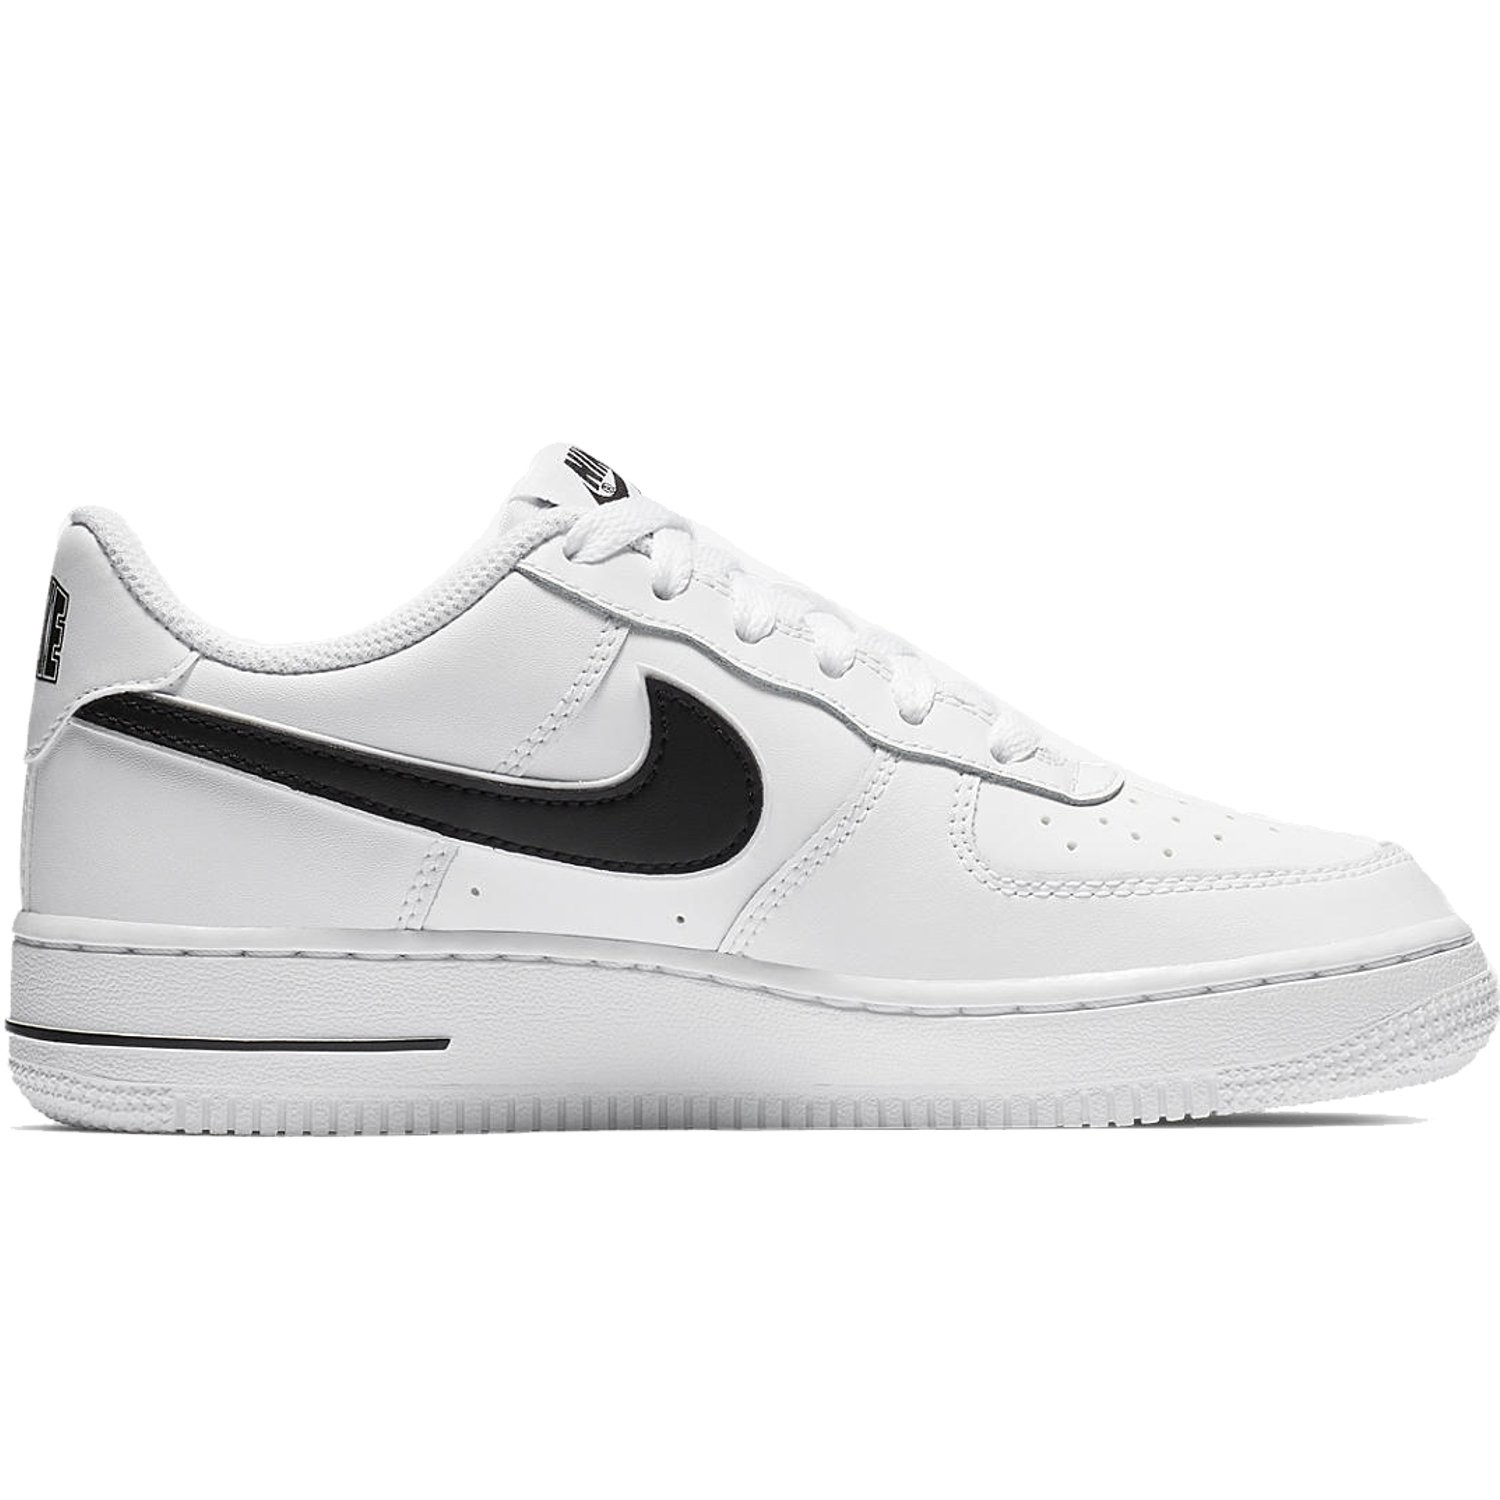 best loved 29ddb d5f8d Style Nike Air Force 1 1-3 GS Bianco Nero Bambino AV6252-100 - Acqu.